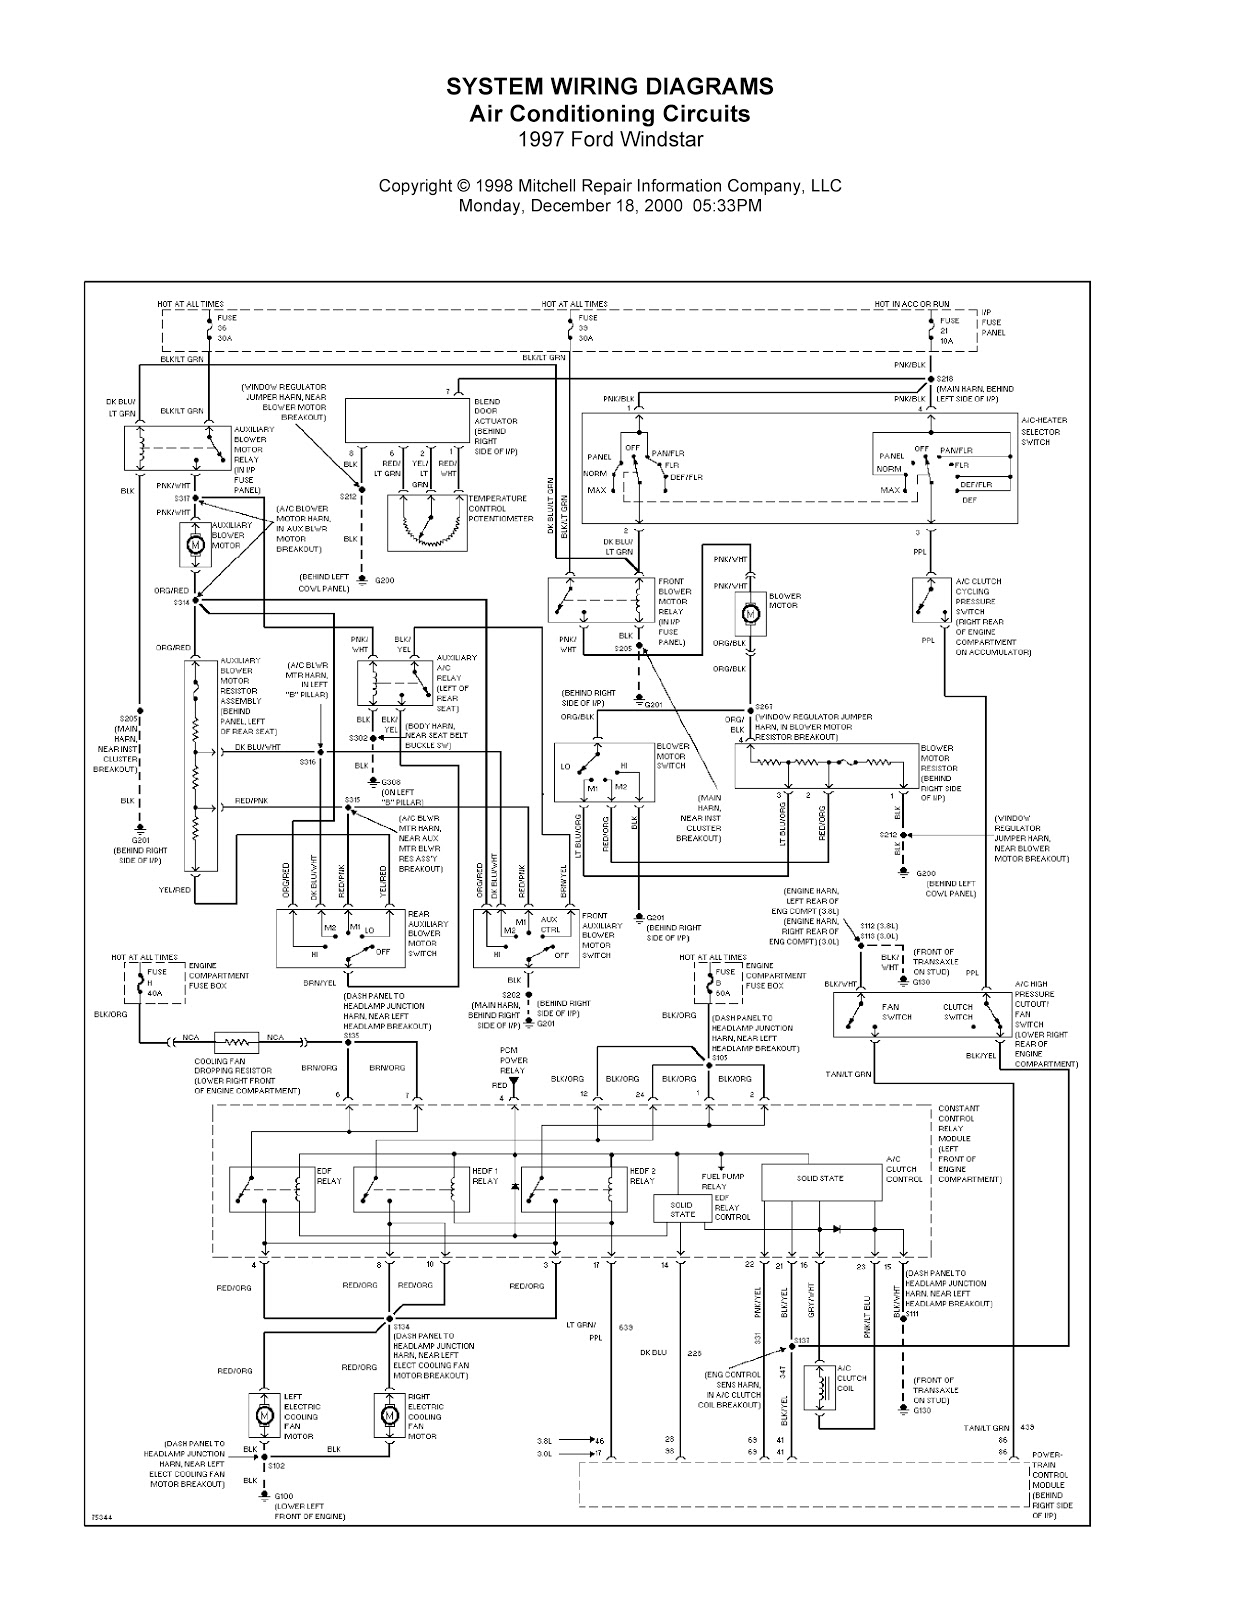 0001 1997 ford windstar complete system wiring diagrams wiring 2002 ford windstar radio wiring diagram at reclaimingppi.co